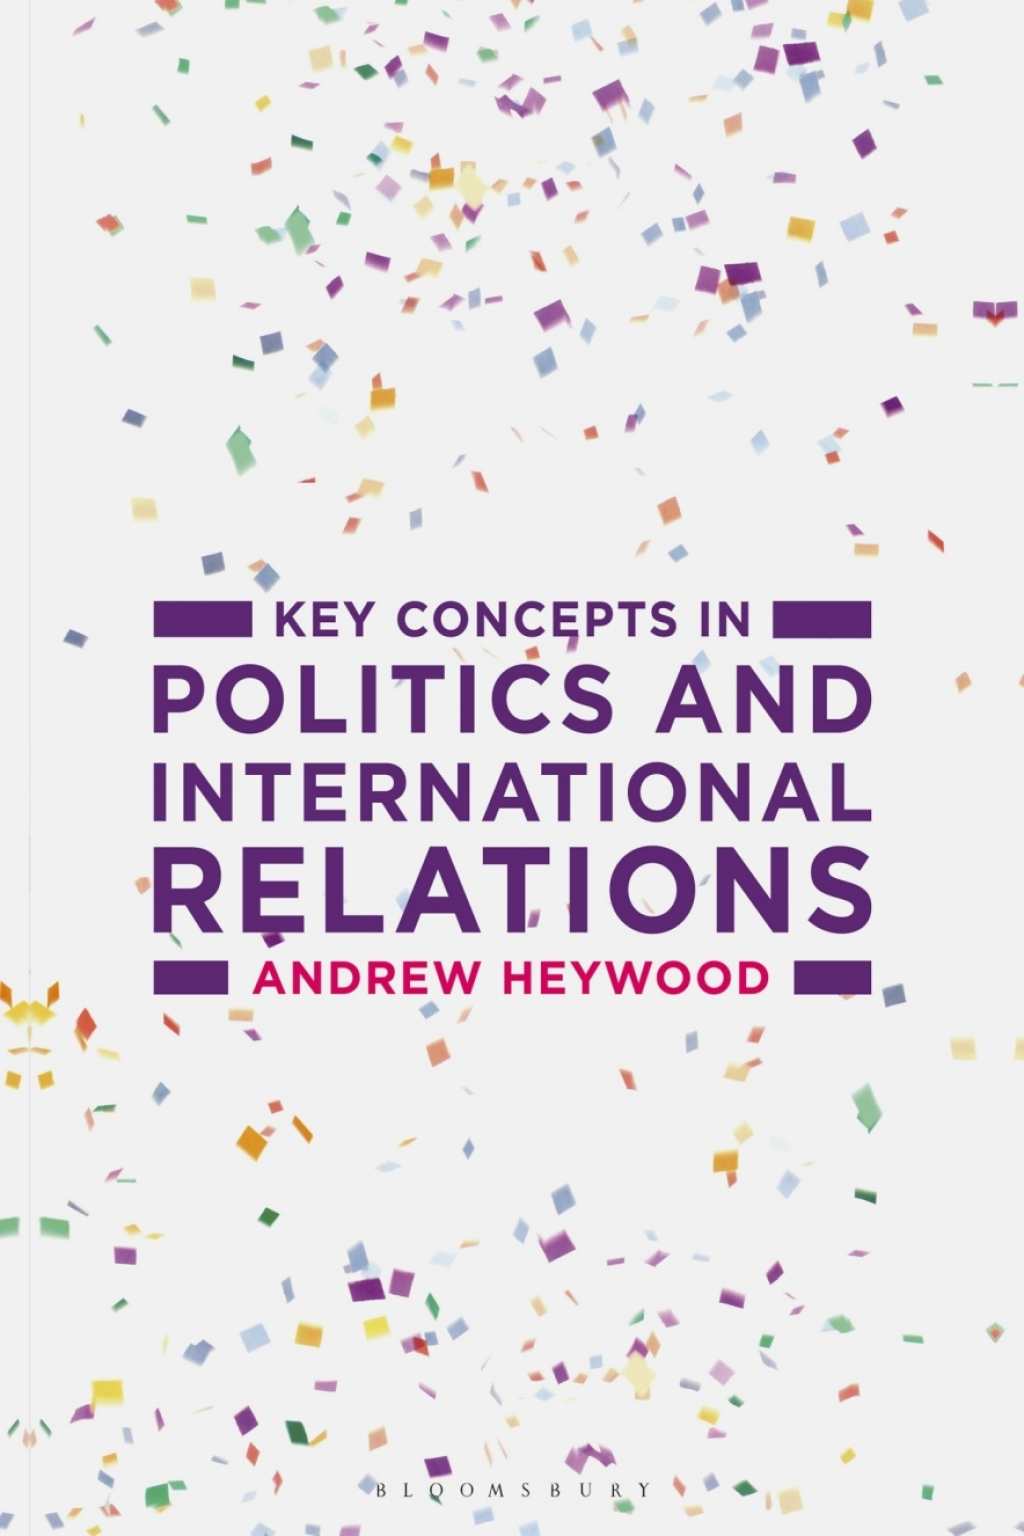 Key Concepts in Politics and International Relations (ebook) eBooks